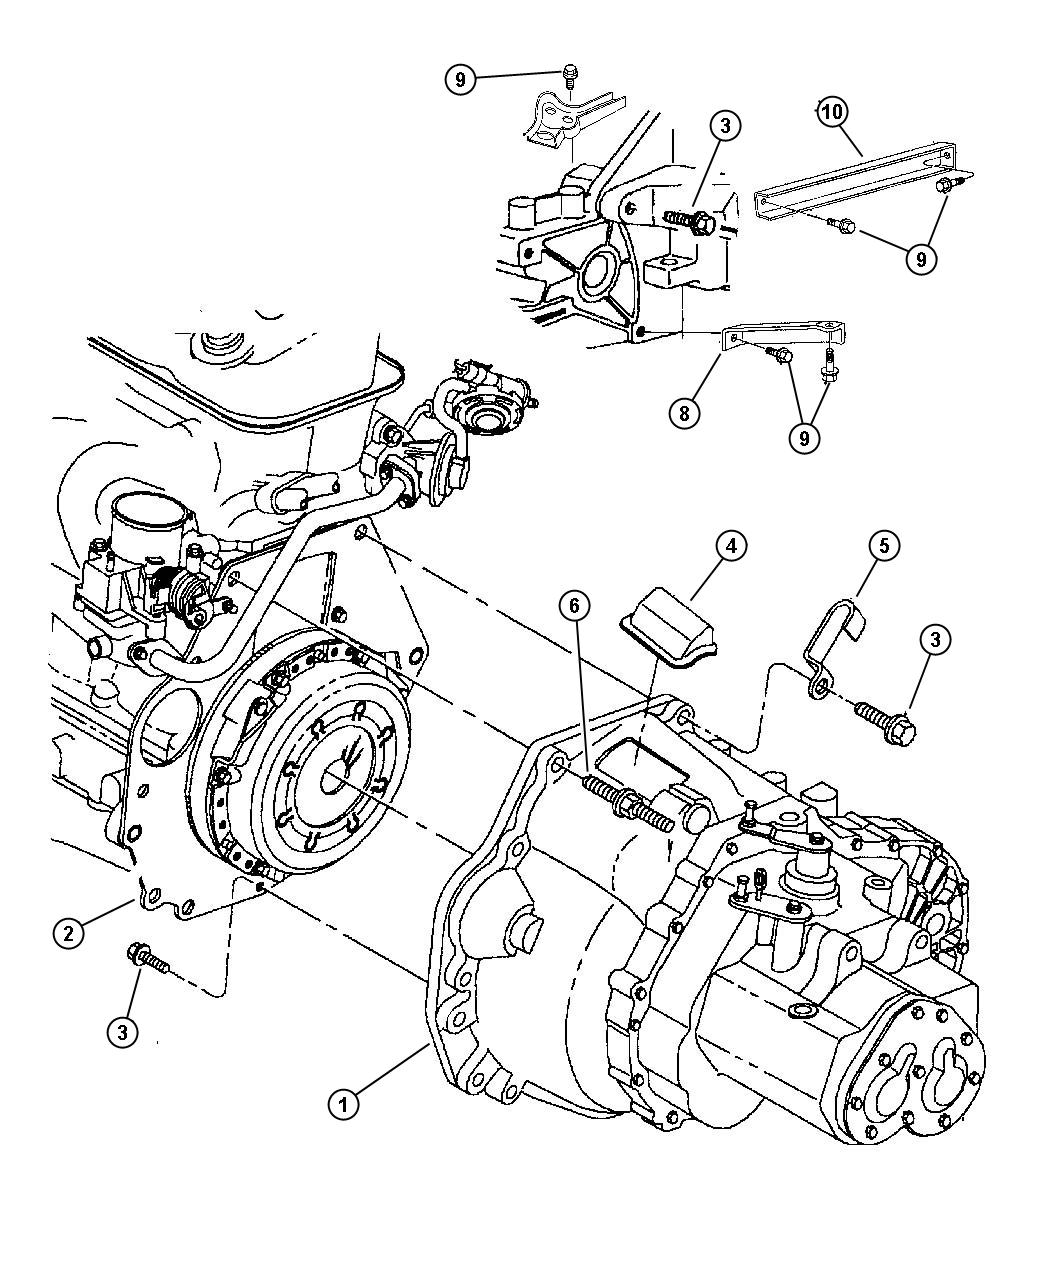 Dodge Magnum Trans. Transaxle, mounting, overall